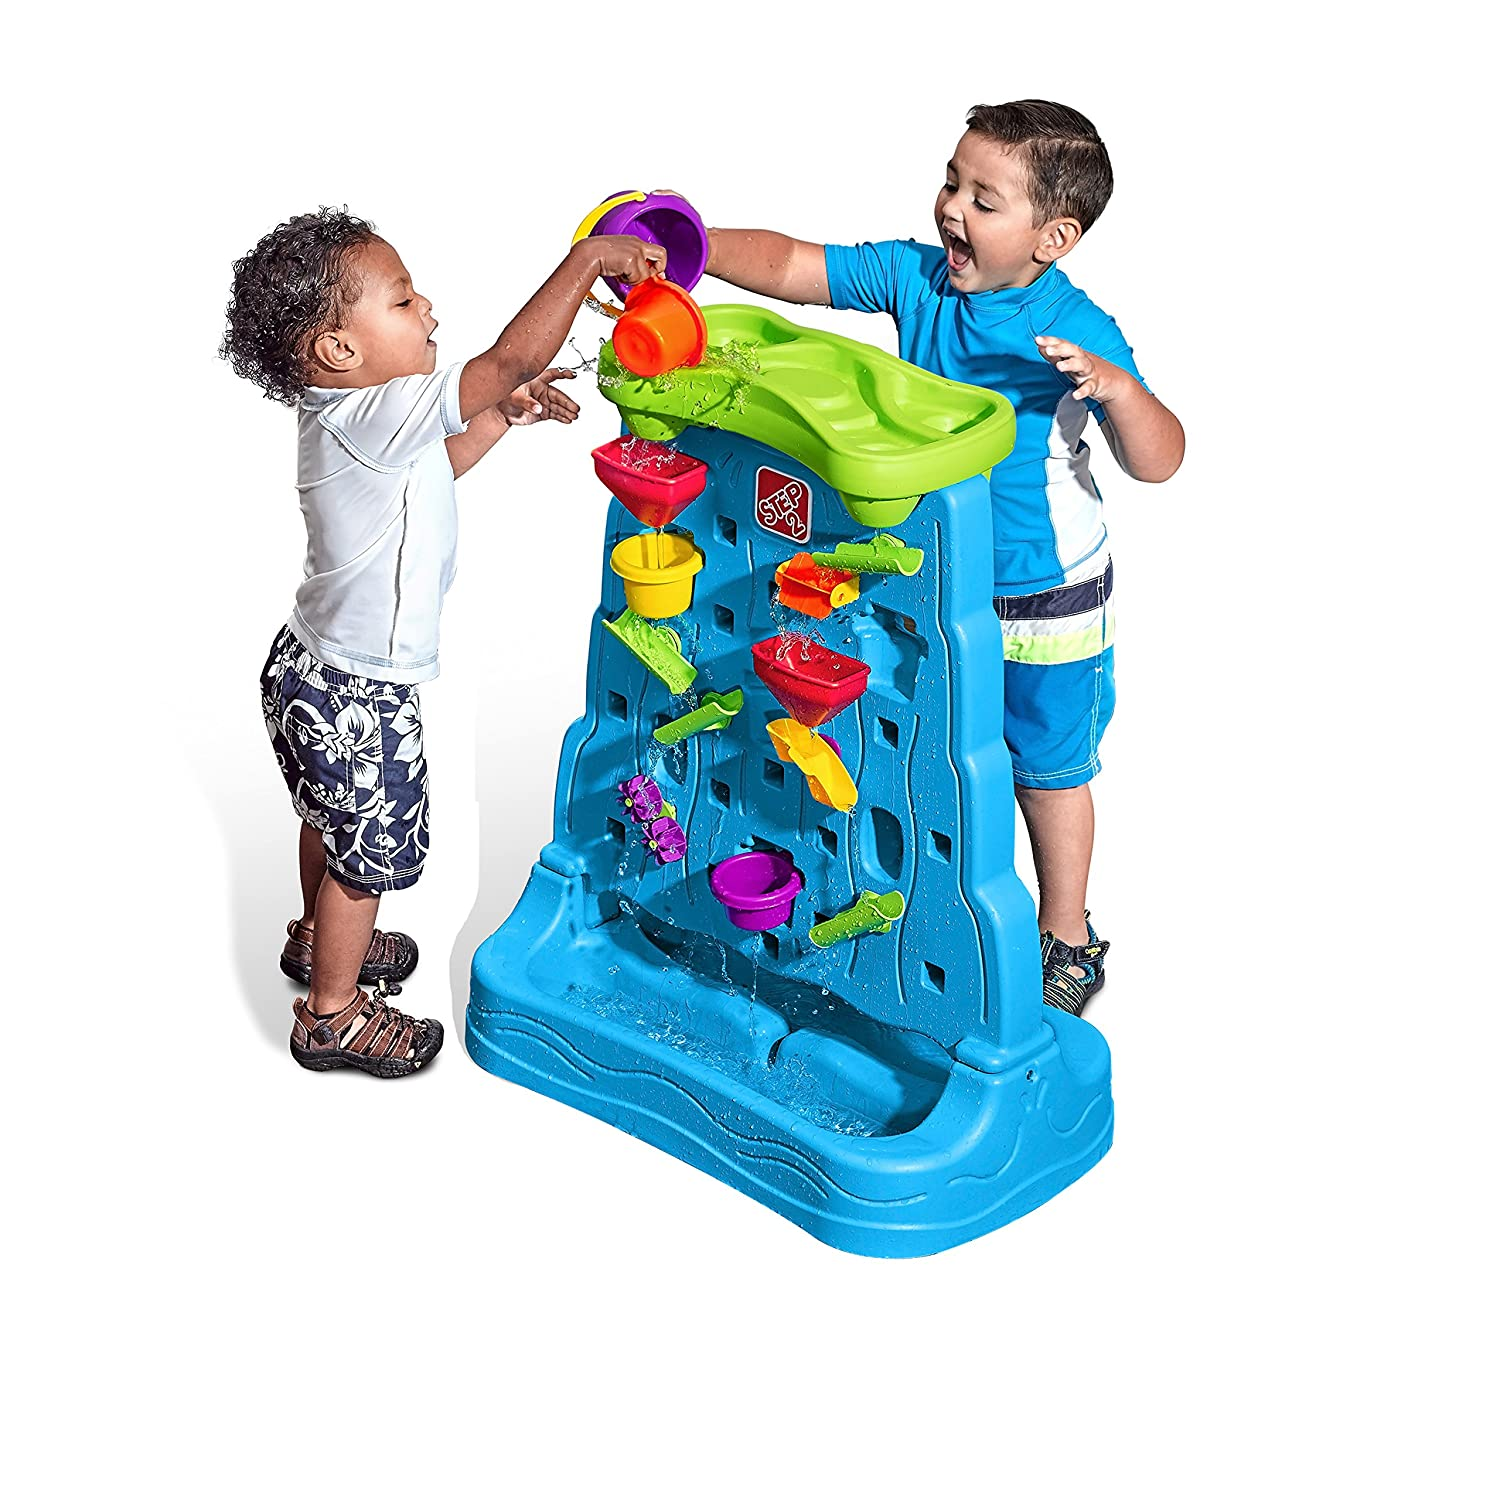 Step 2 Waterfall Playset